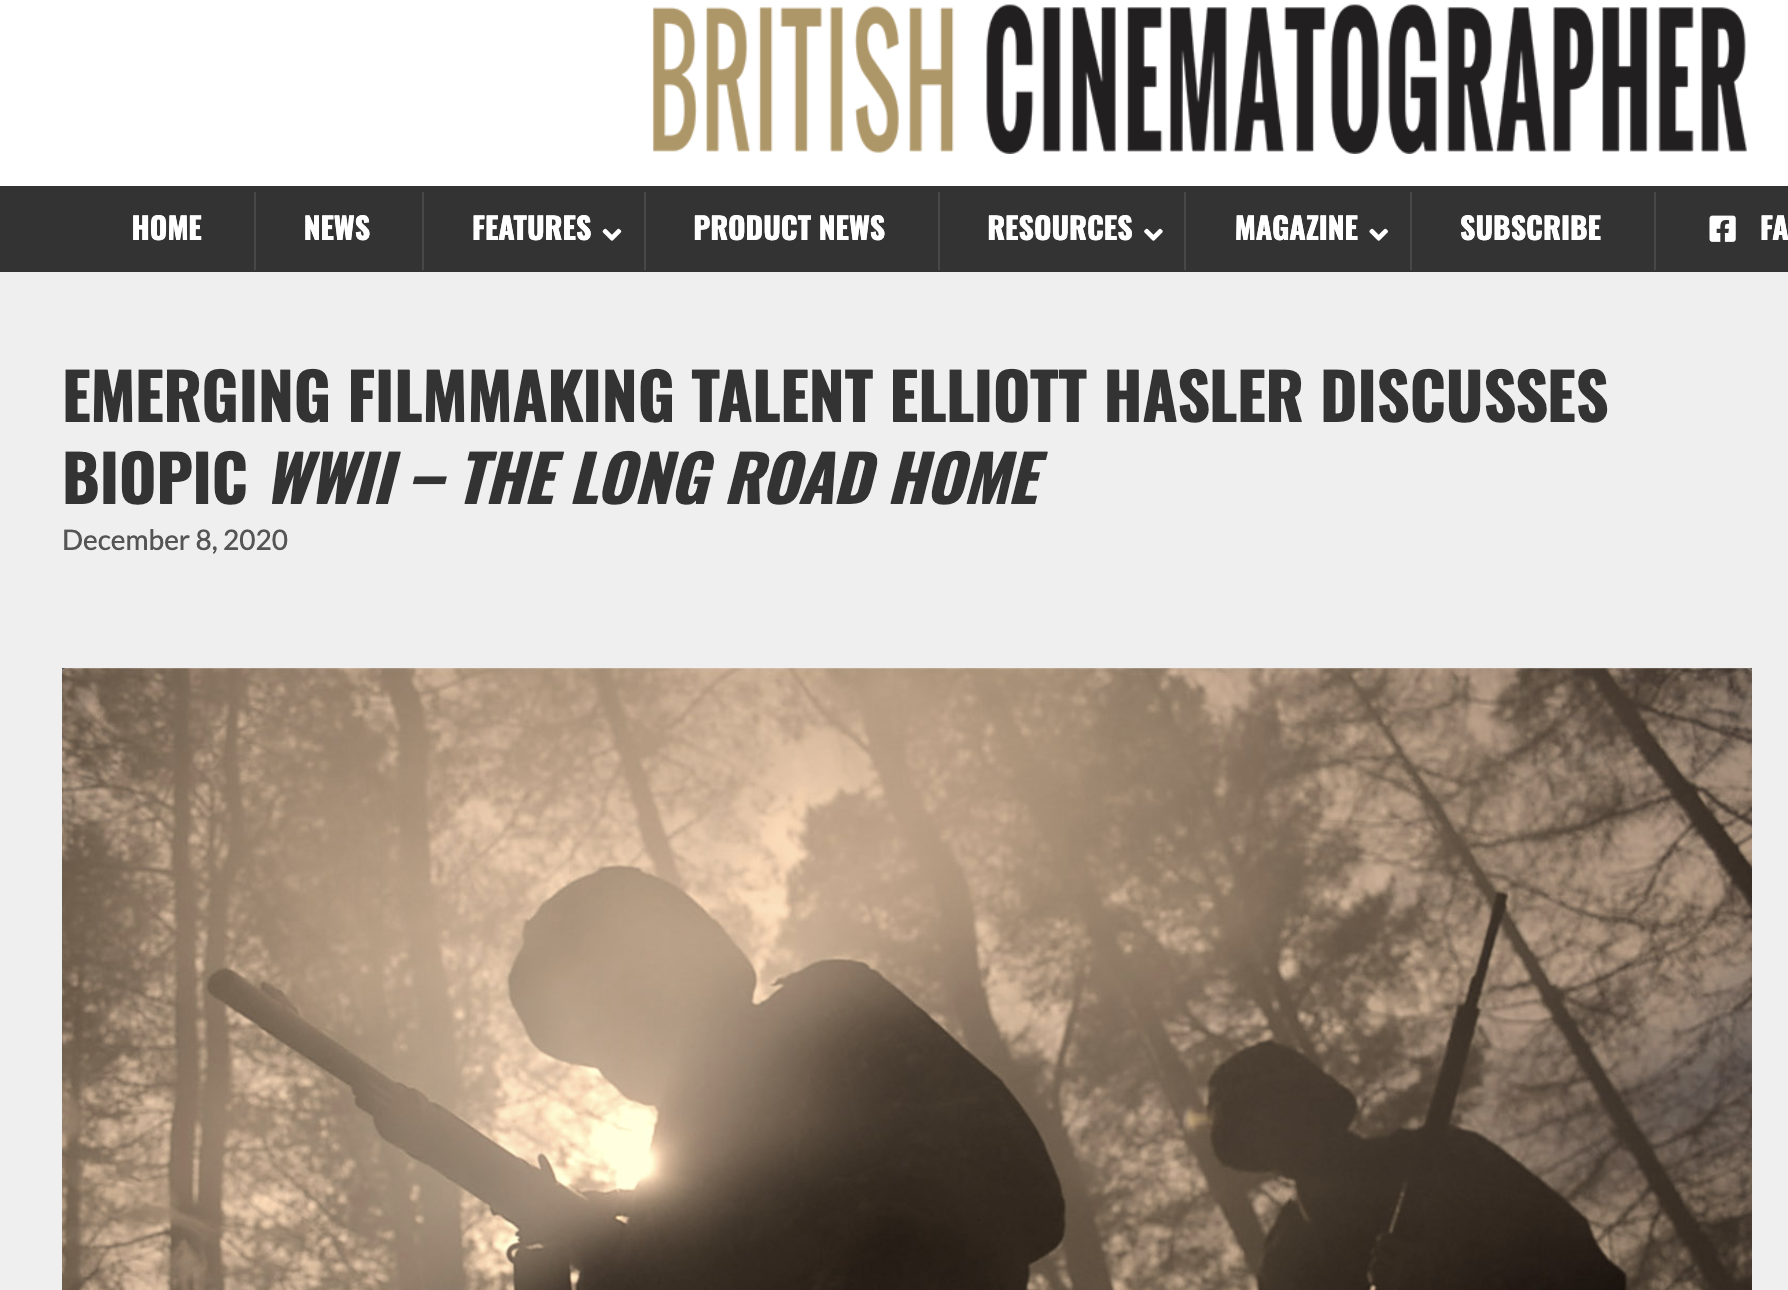 EMERGING FILMMAKING TALENT ELLIOTT HASLER DISCUSSES BIOPIC WWII – THE LONG ROAD HOME